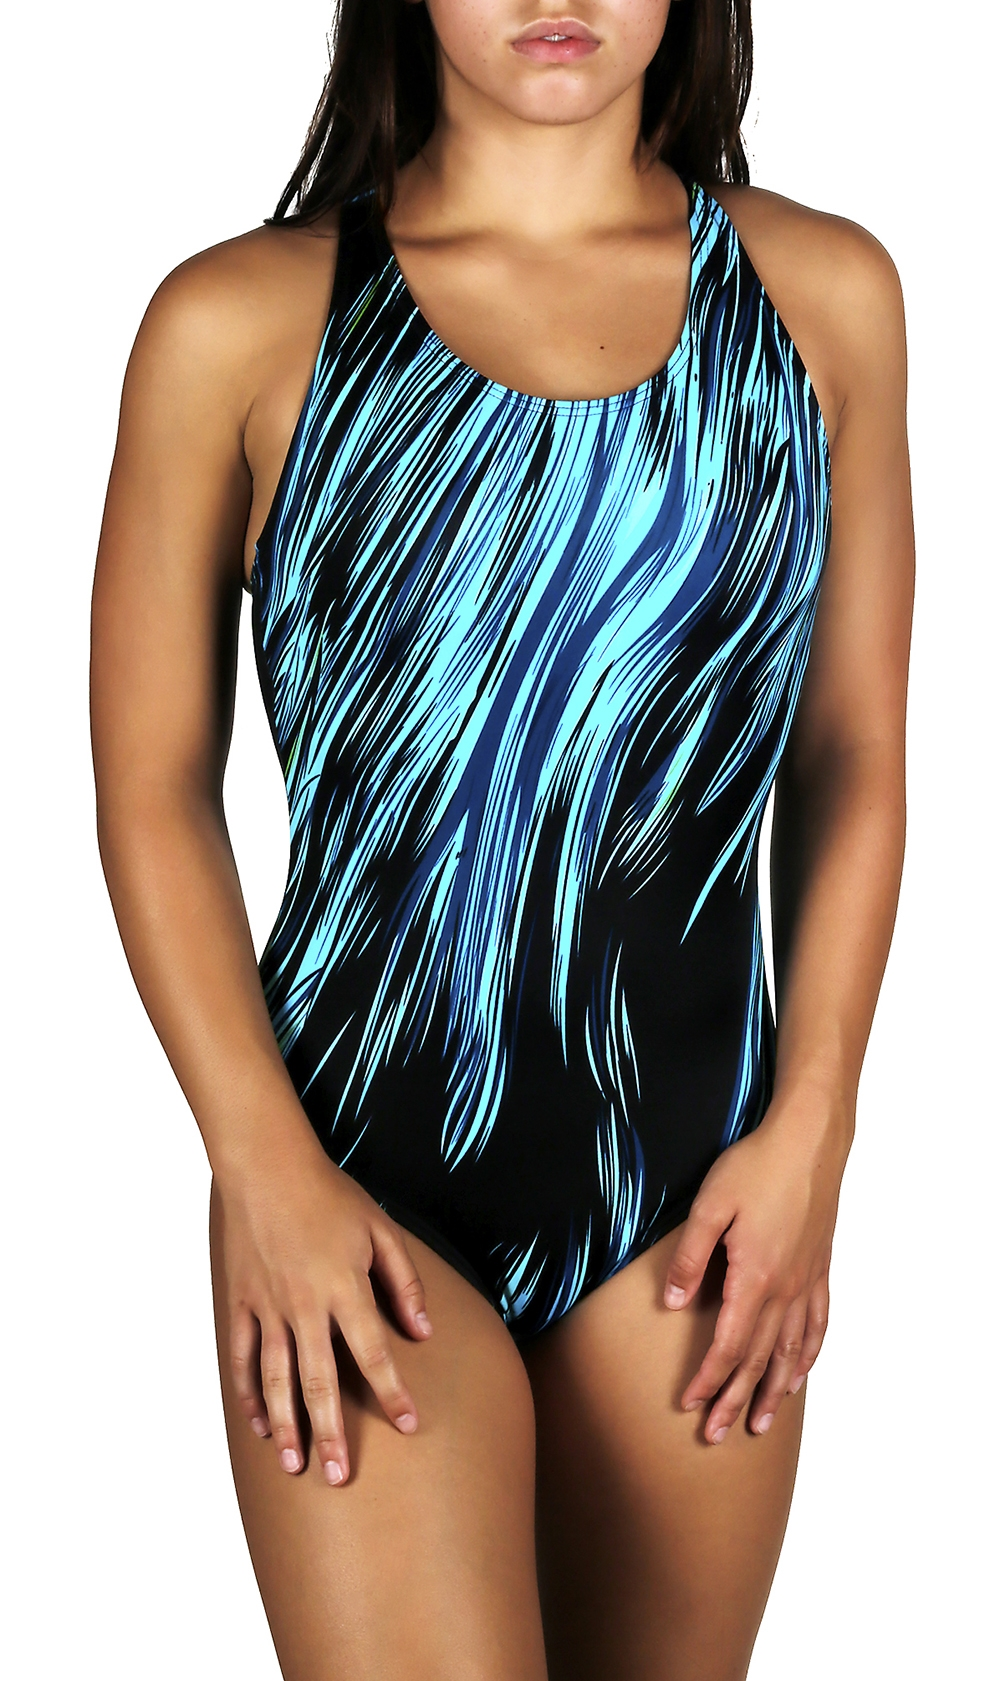 Adoretex Female Surfire  Lap Swimsuit-FS007